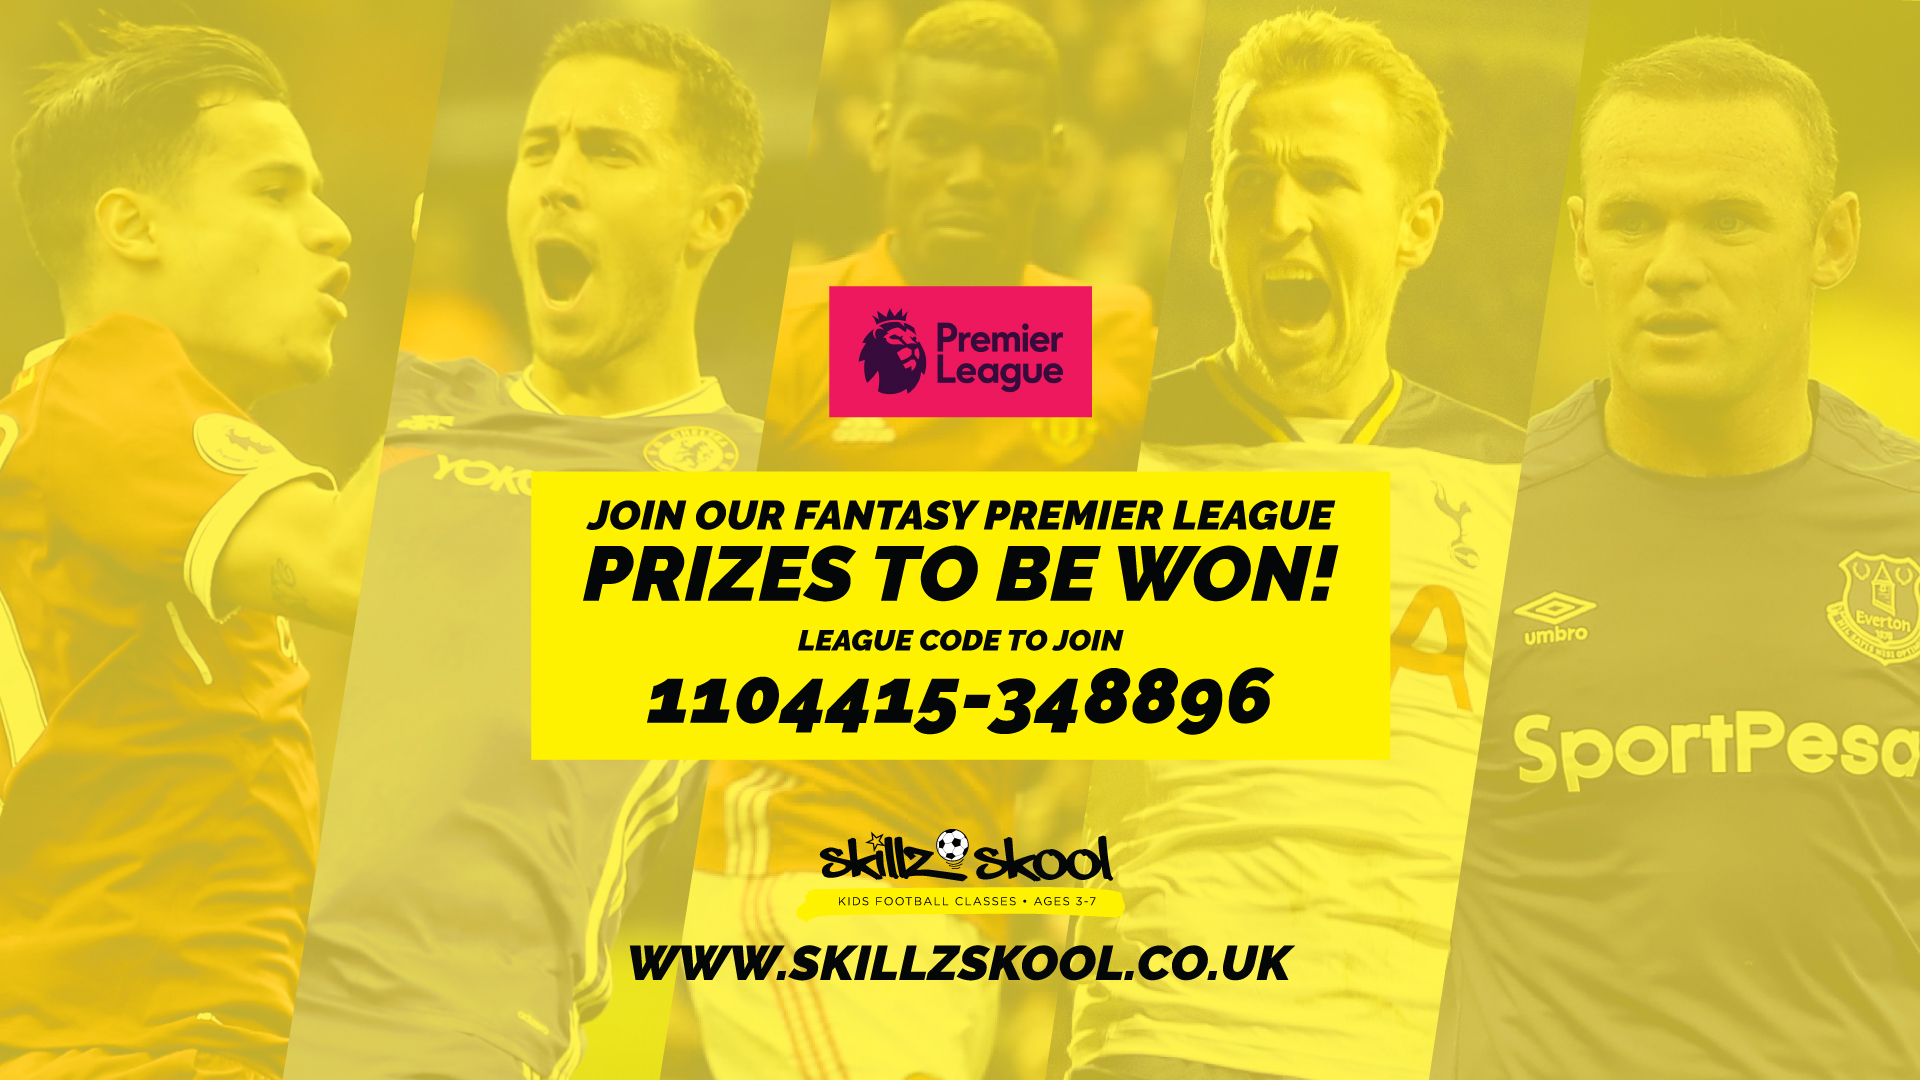 Fantasy Premier League with Skillz Skool